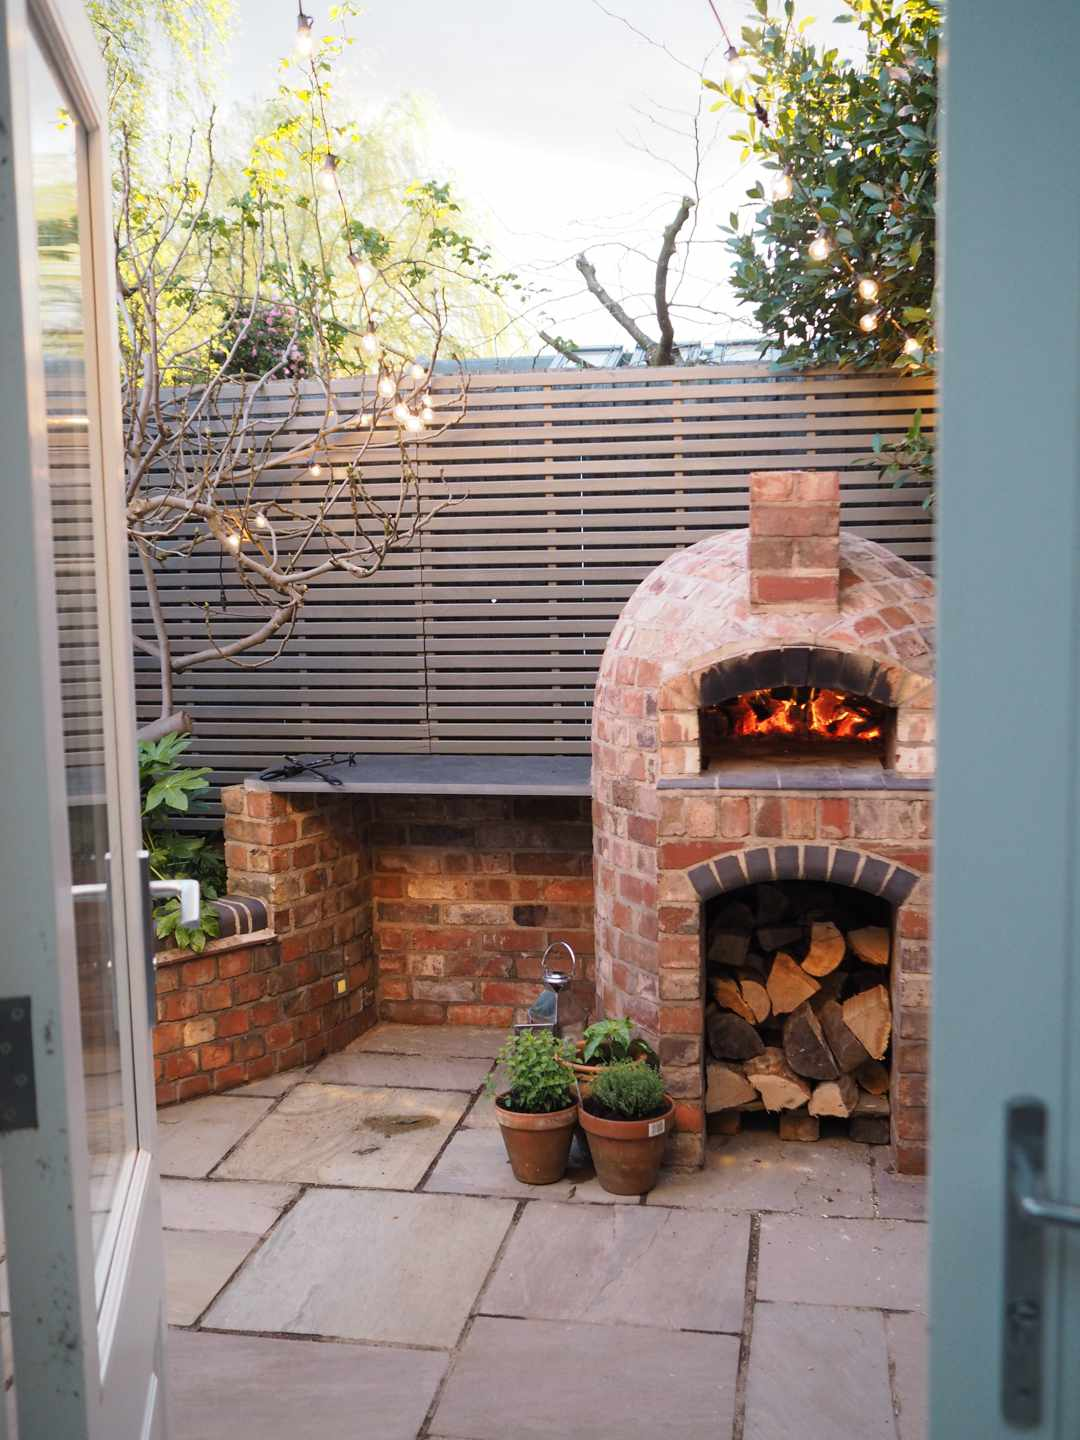 Small outdoor kitchen with wood pizza oven